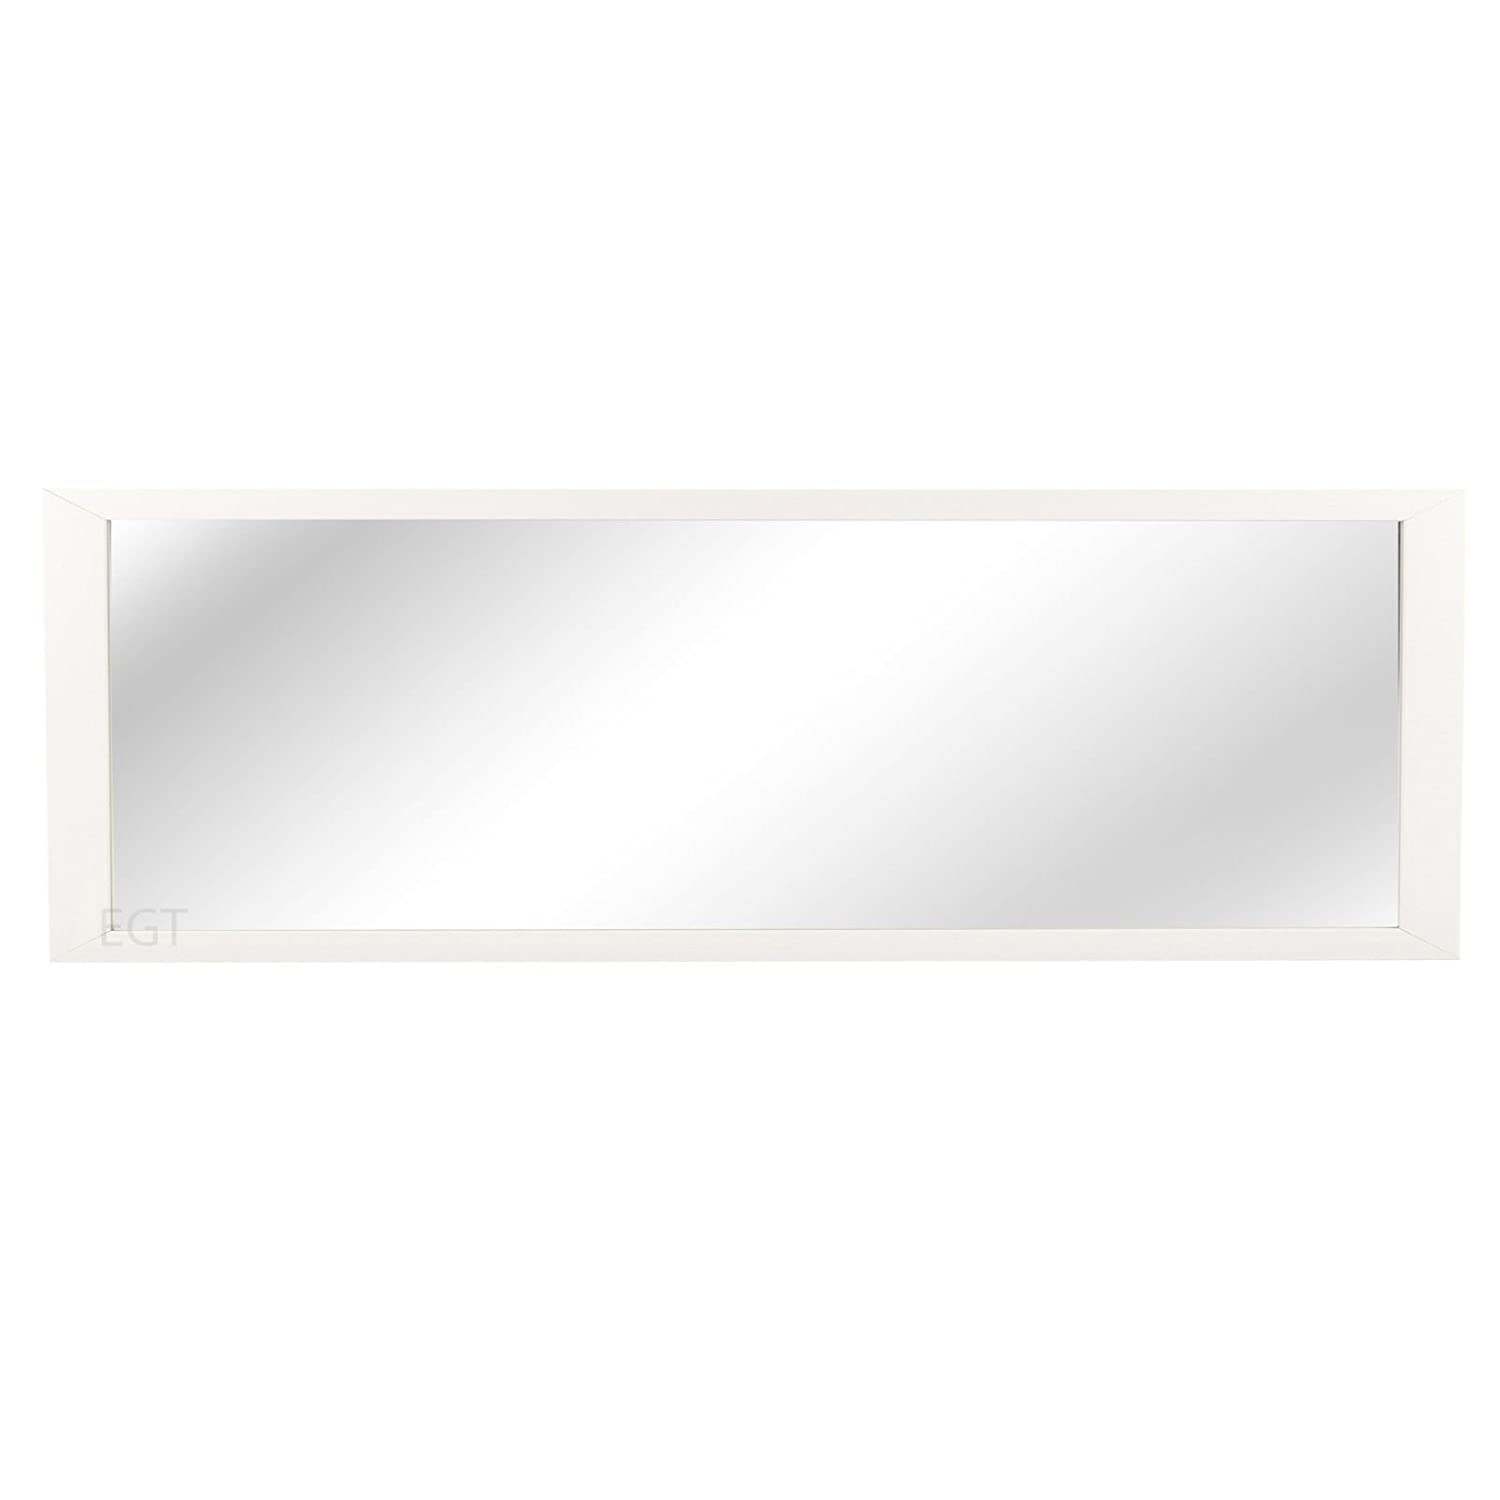 URBN Living White Long Full Length Floor Bedroom Furniture Hanging Wall Mirror EASYGIFT